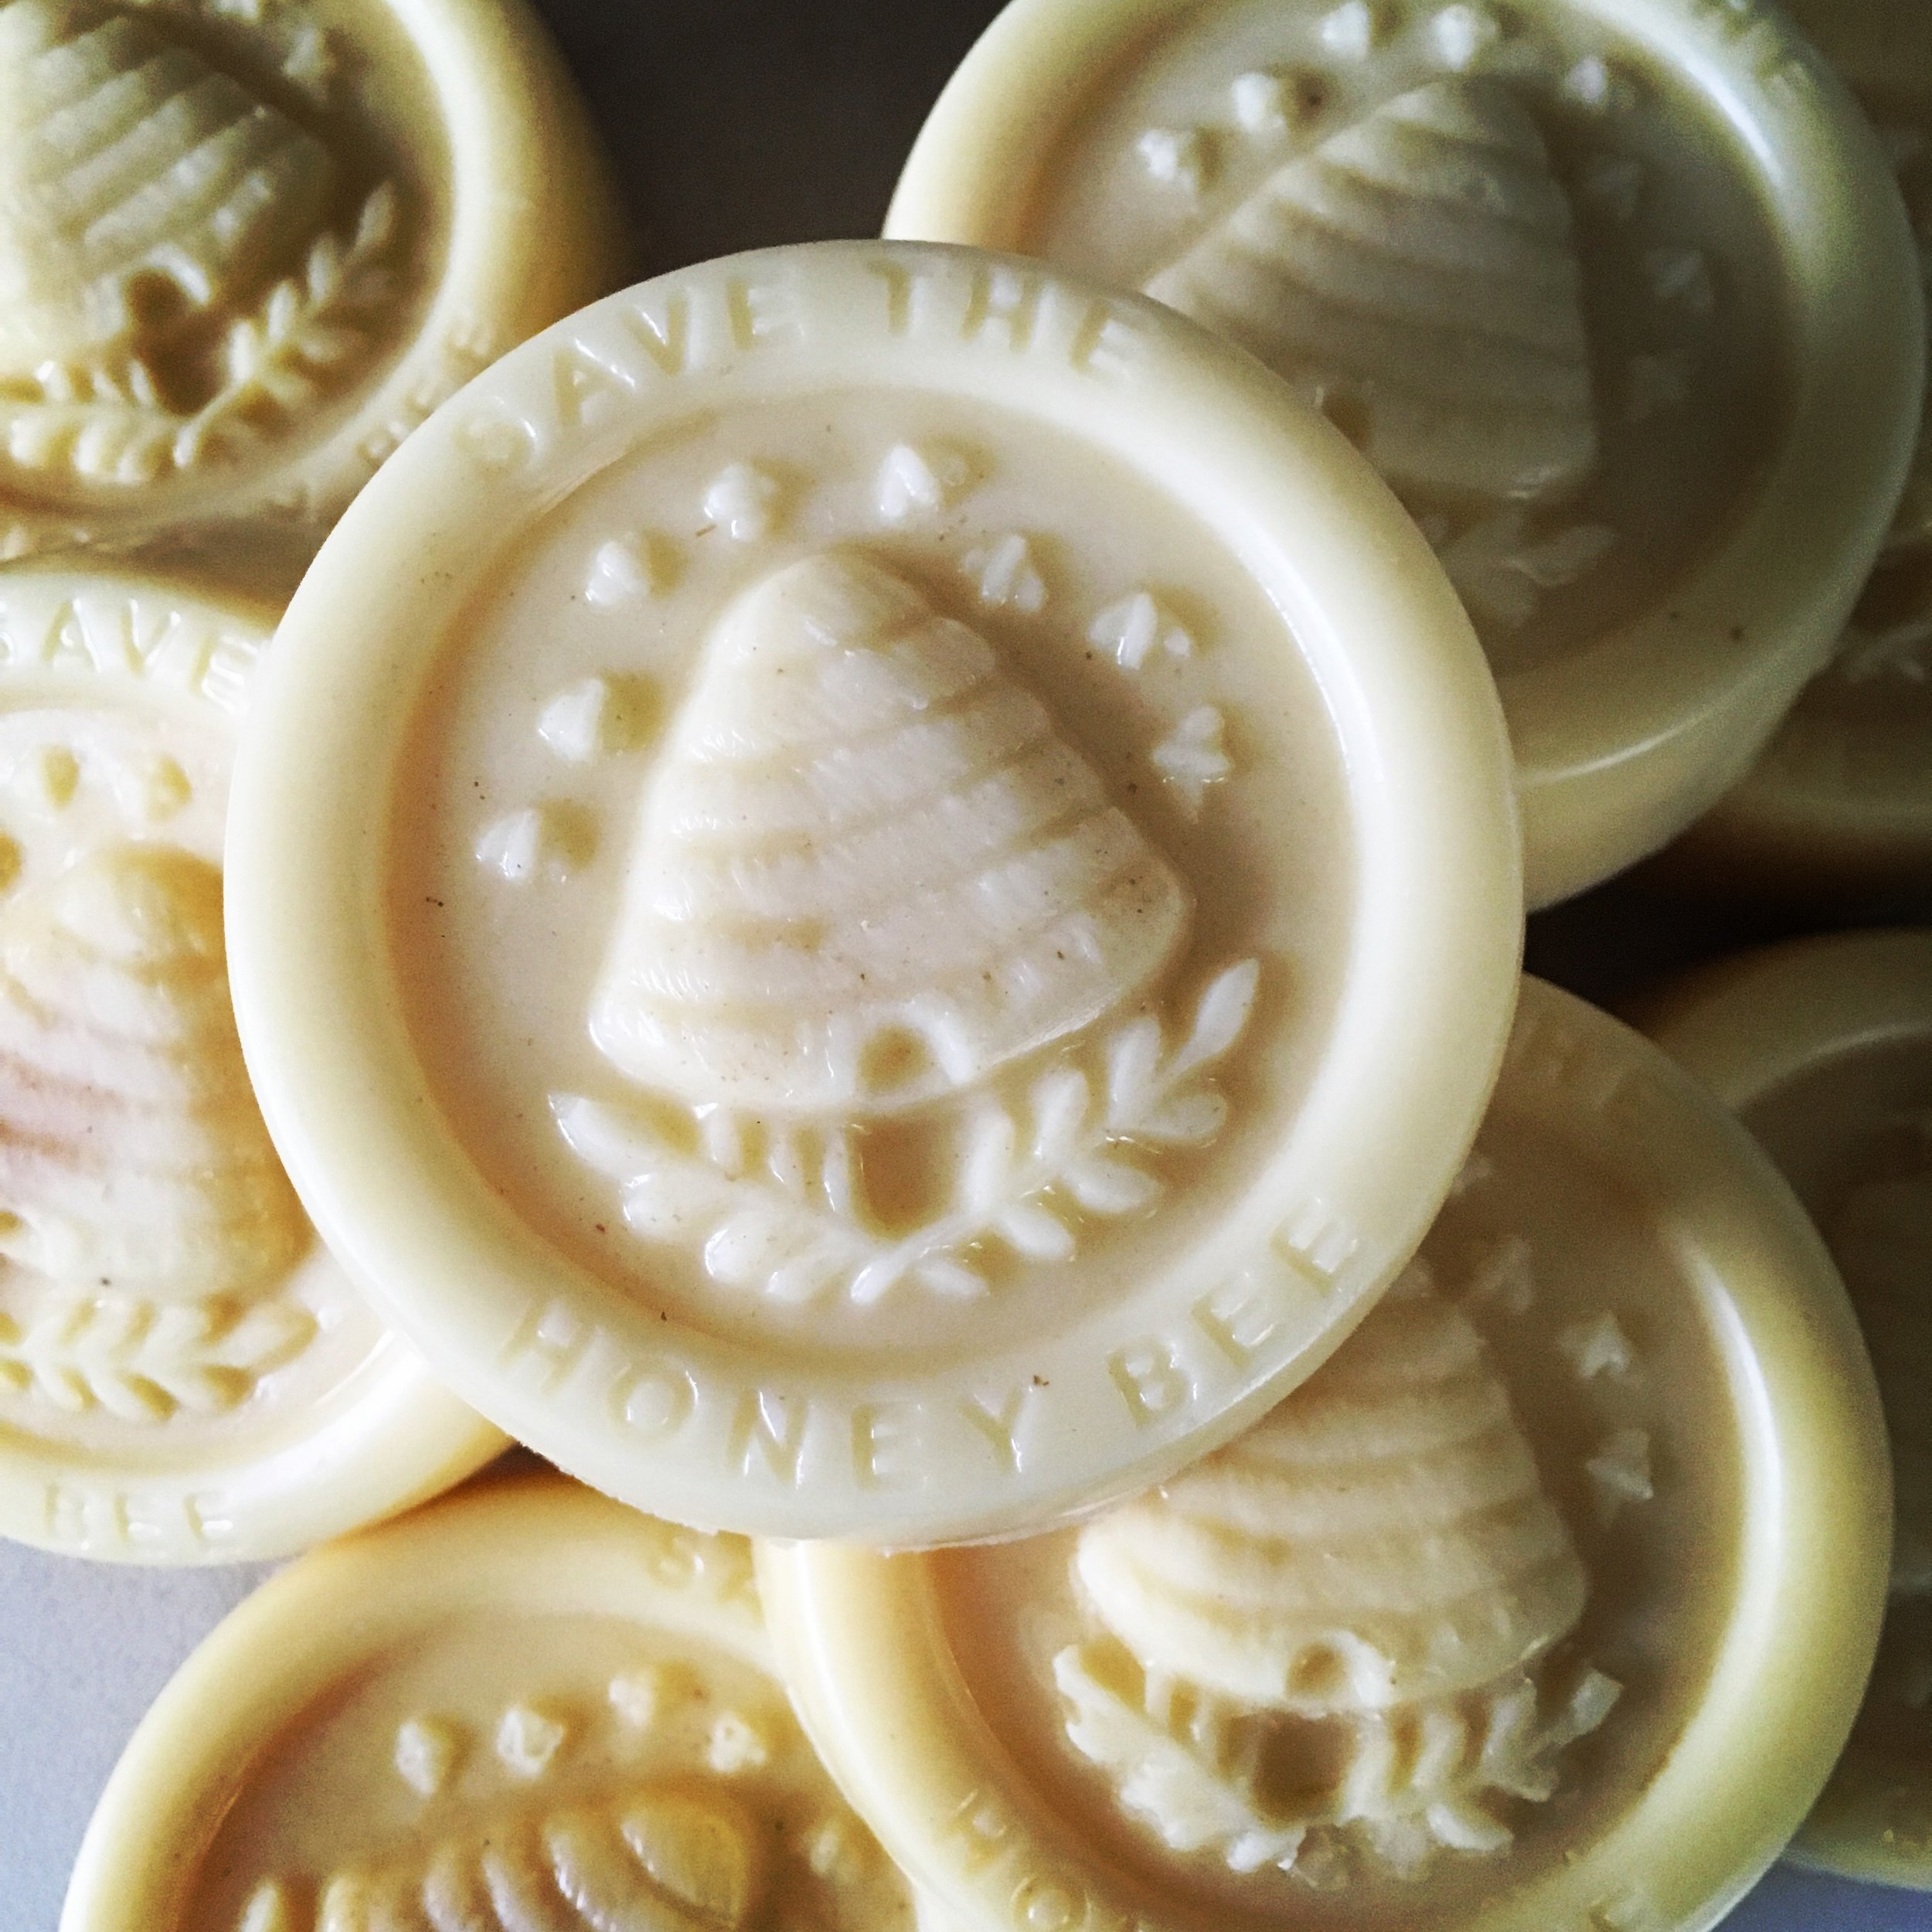 Our beeswax lotion bars are made using only beeswax from our own hives, organic shea butter, and organic sunflower oil.